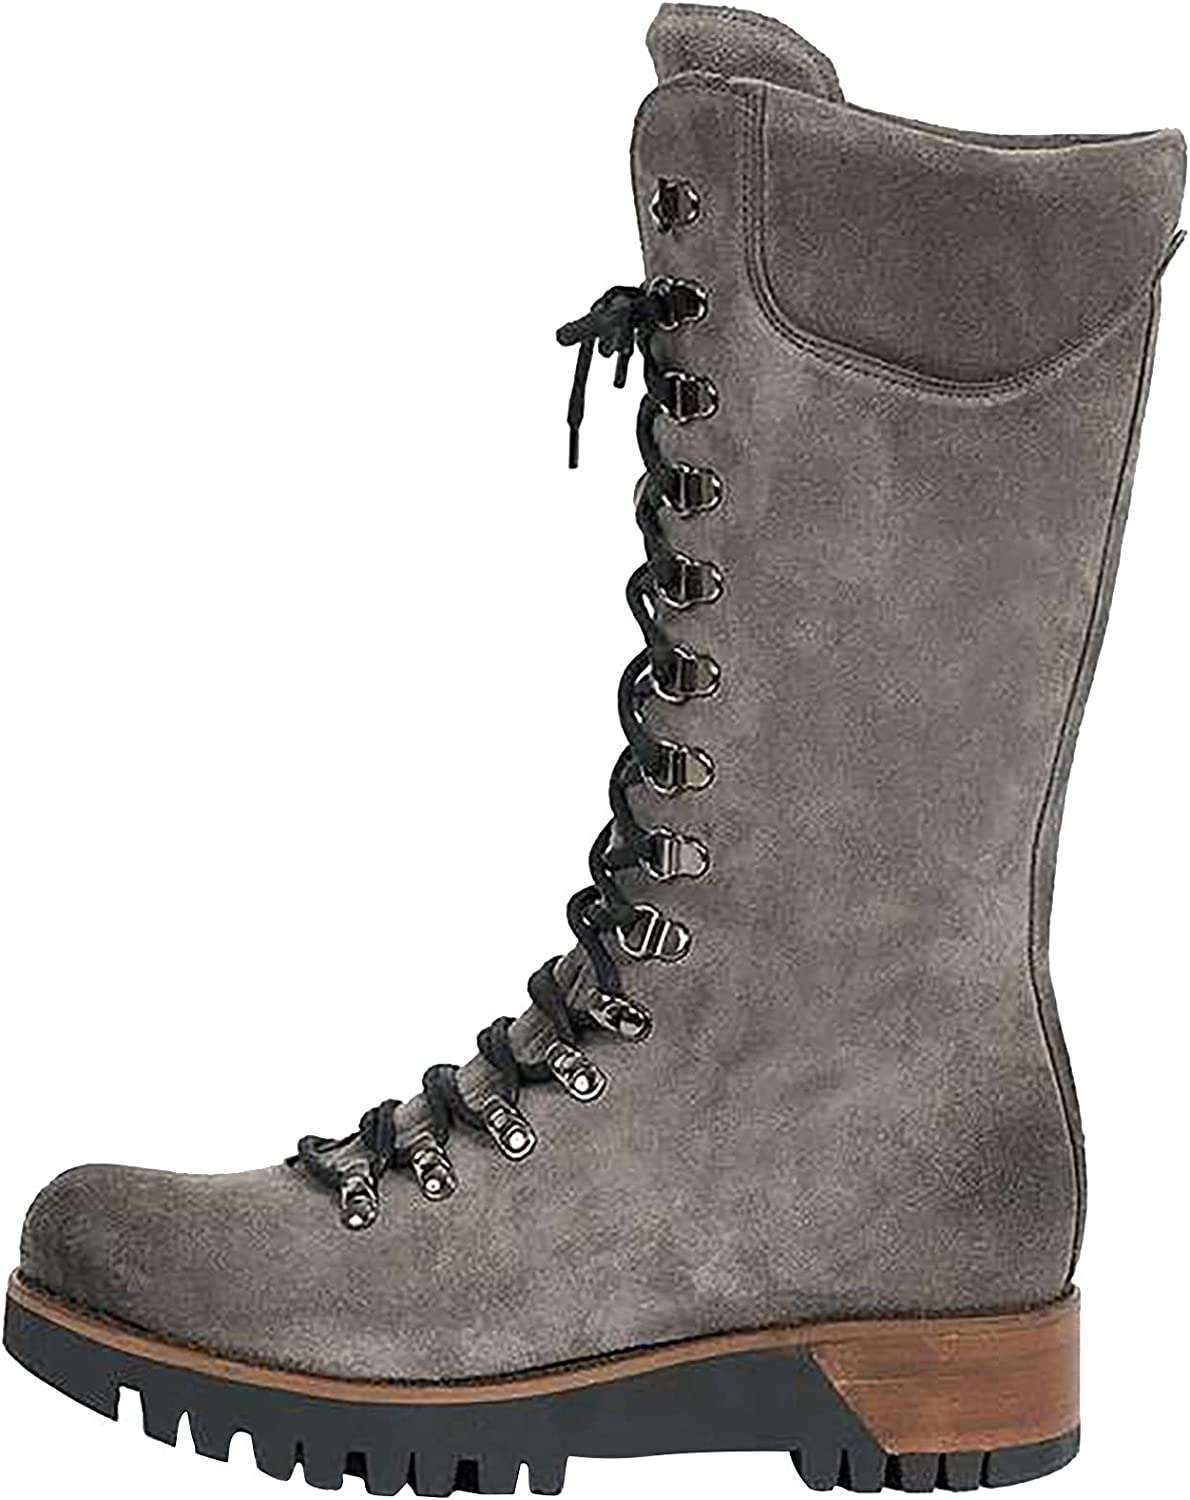 JABROCT Autumn and Winter New Women's Sexy Suede High Boots Retro Metal Decoration Front Lace Up Outdoor Knight Boots Fashion Casual No-Slip Thick Heel Middle Boots